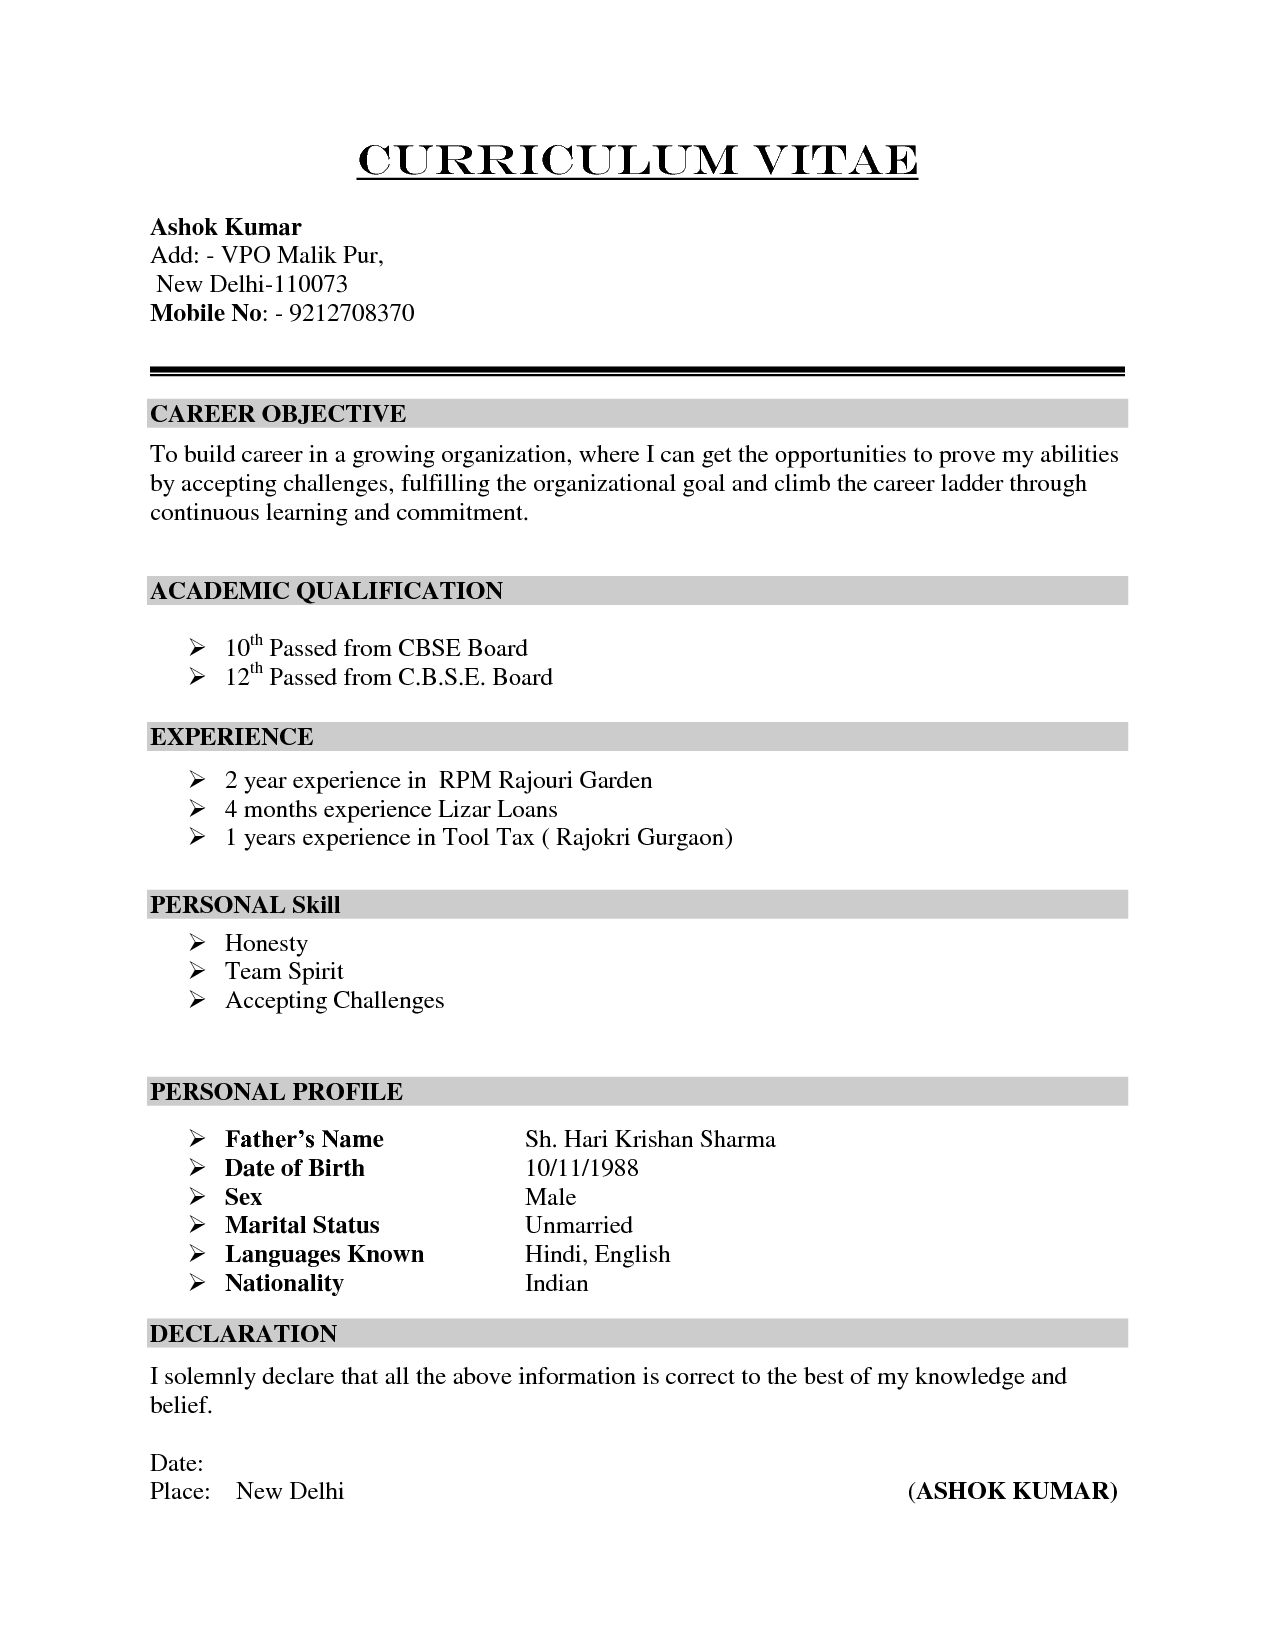 how to write a resume cover latter sample pinterest image